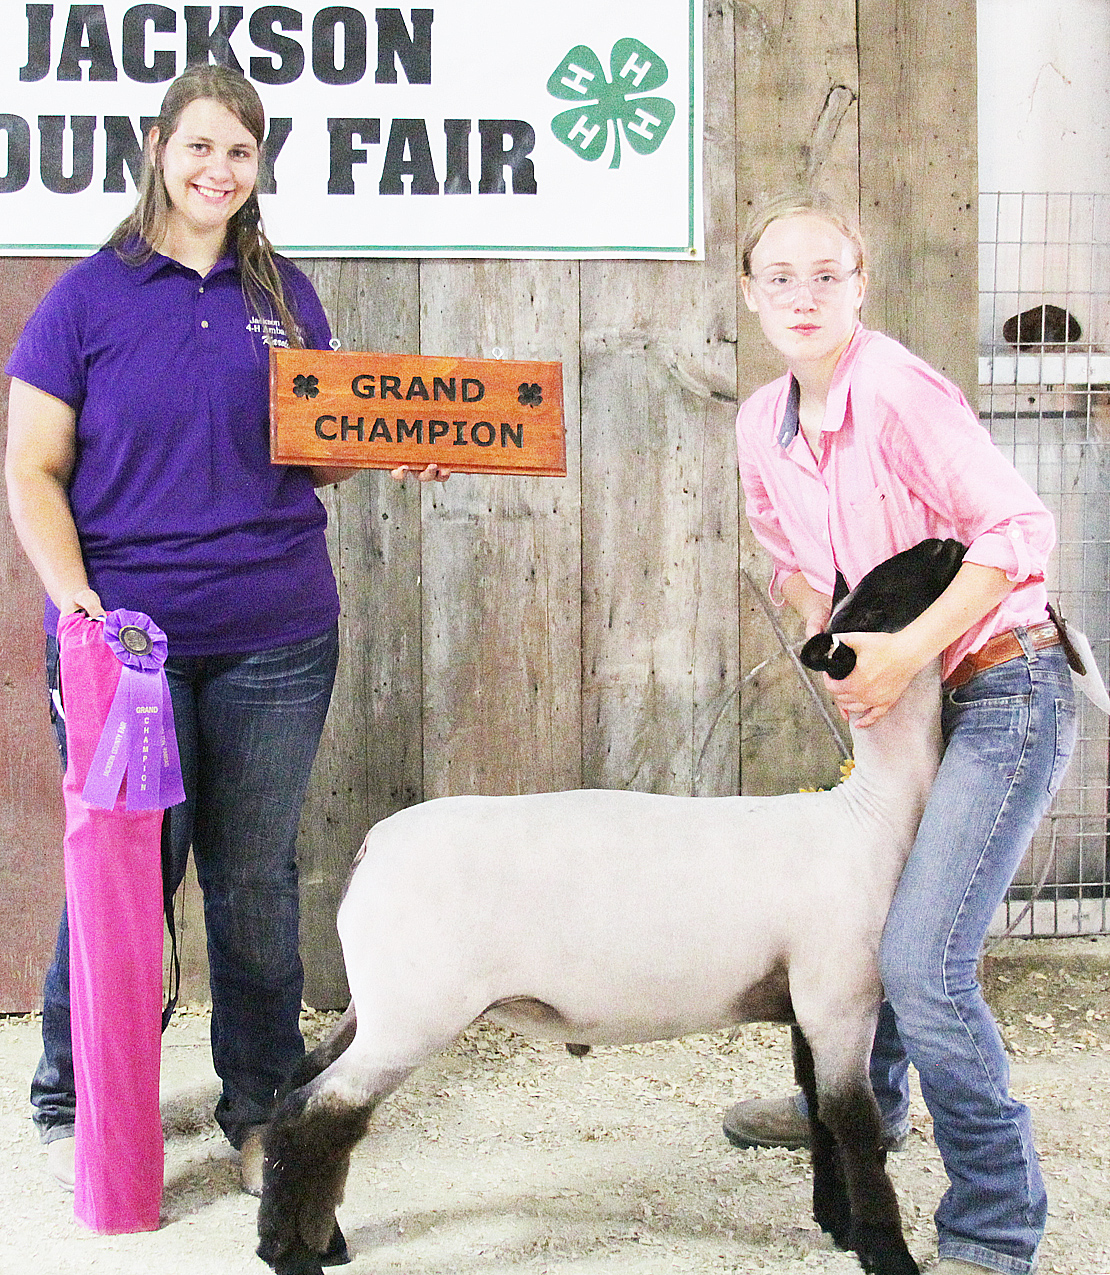 Lora Larison of the Pleasant Valley Rustlers 4-H Club showed the Grand Champion overall market lamb at the 2020 Jackson County Fair.